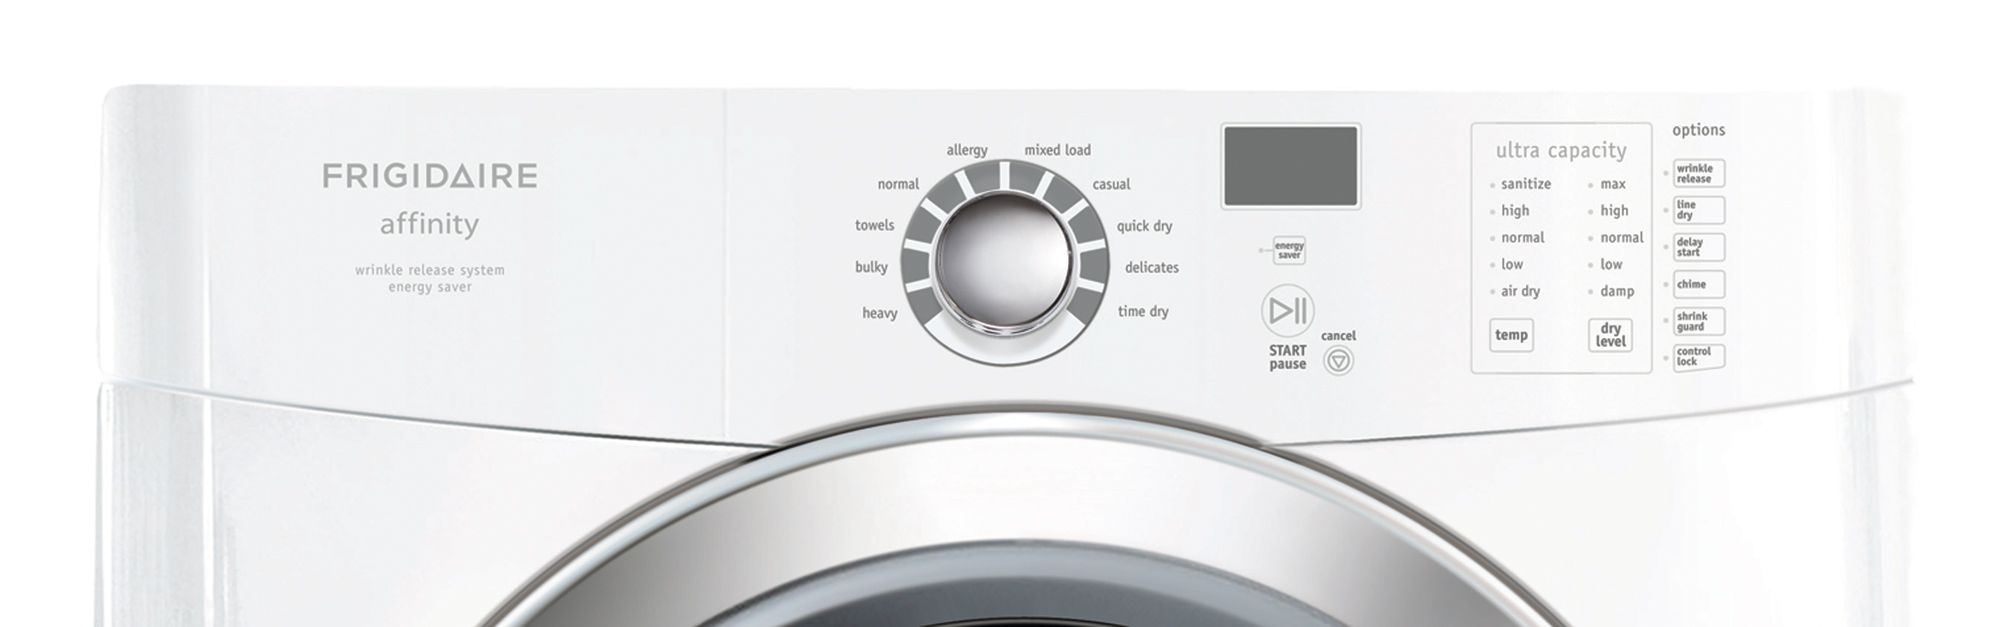 Frigidaire Affinity 7.0 cu. ft. Electric Dryer (FAQE7072)